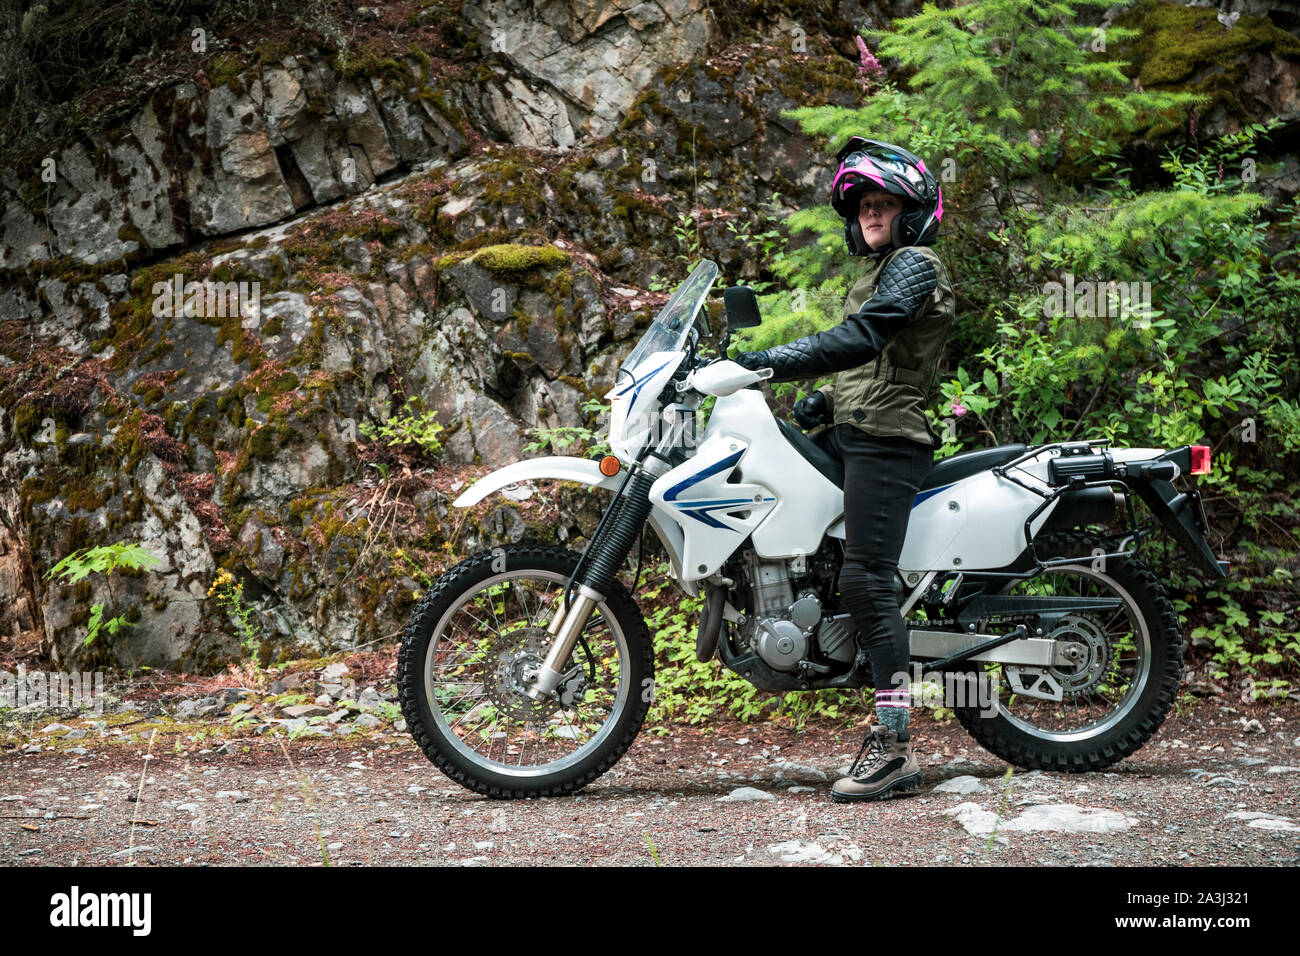 A women riding a motorcycling stops on a gravel road. Stock Photo